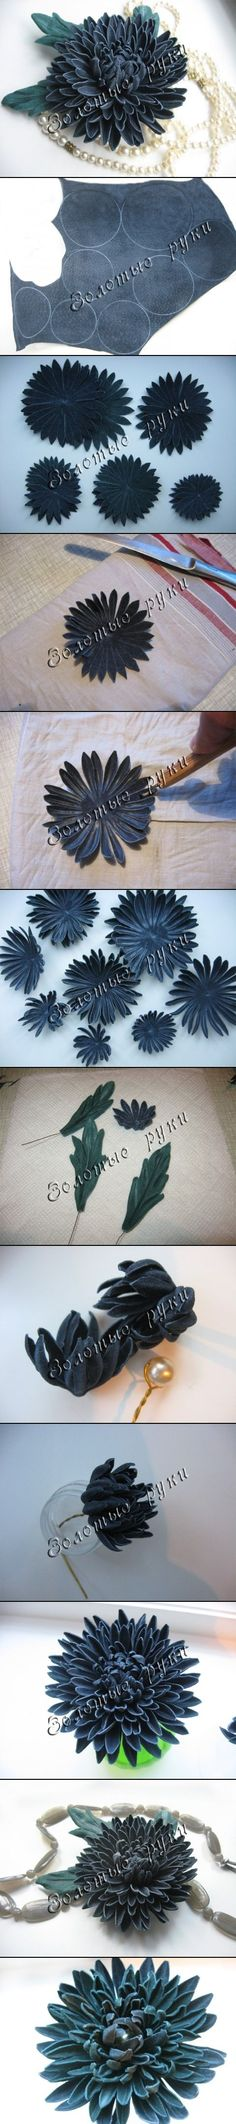 Leather chrysanthemum tutorial - it's done with suede, but…